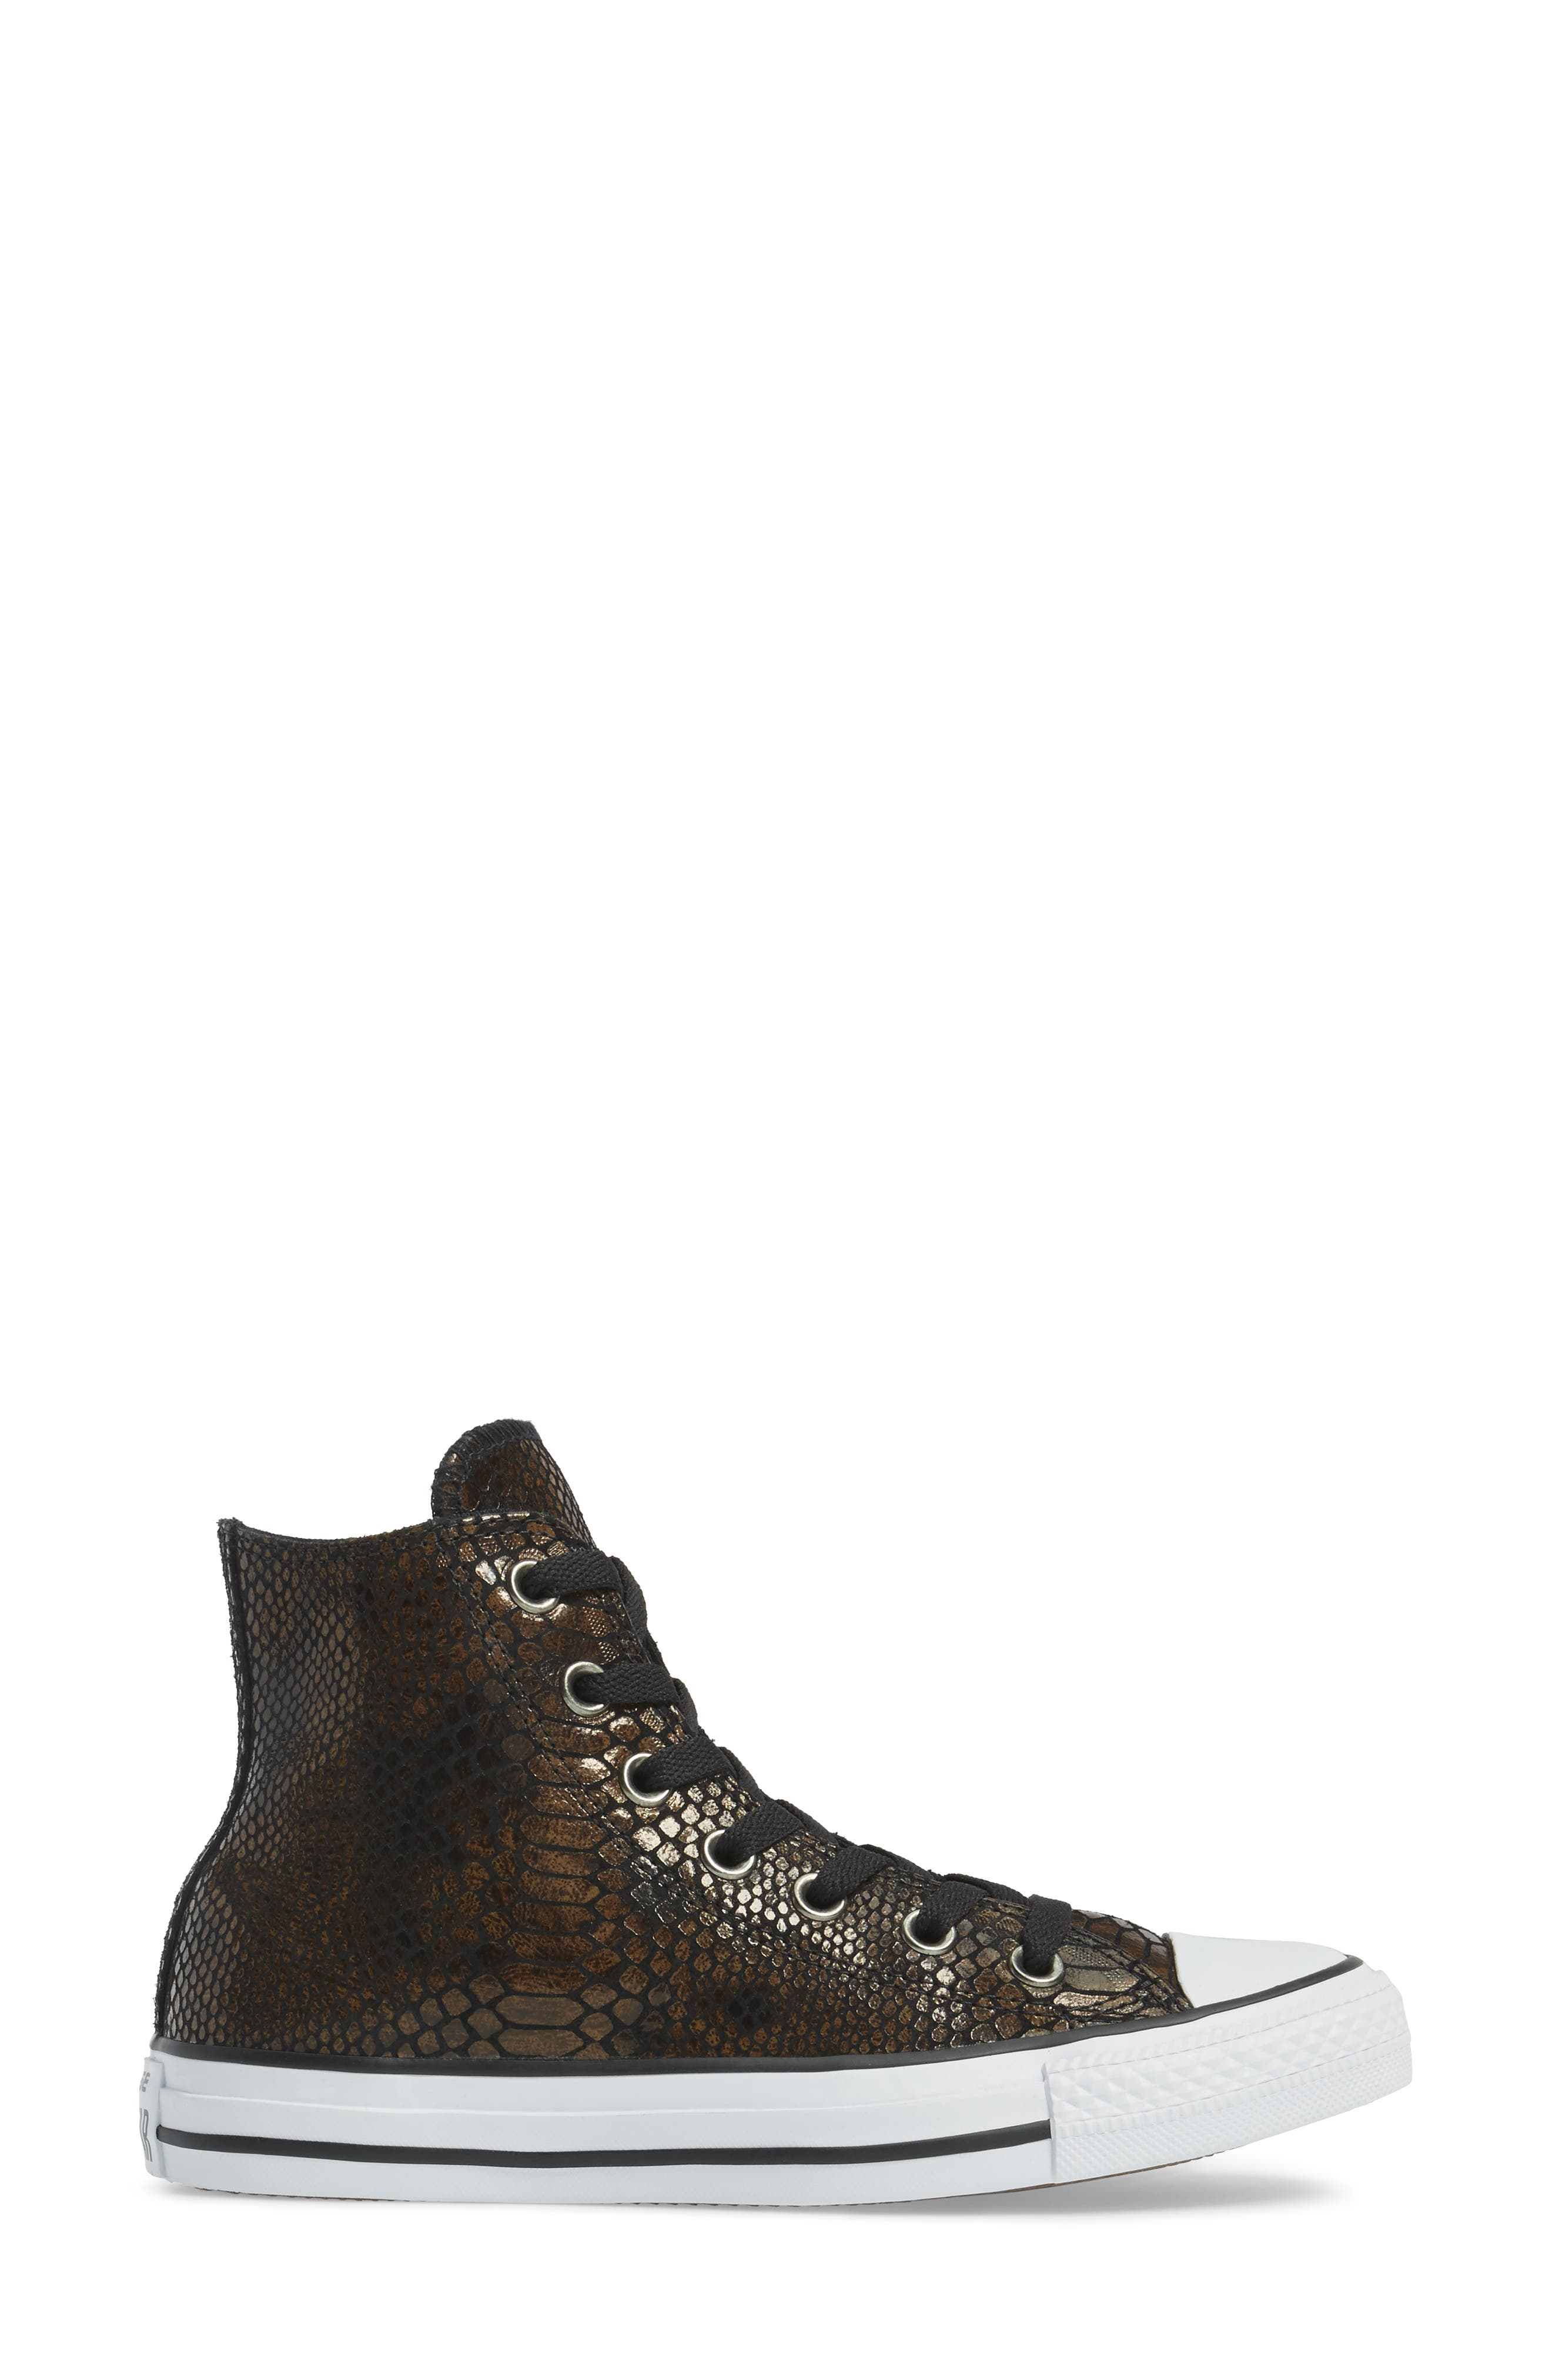 Alternate Image 3  - Converse Chuck Taylor® All Star® Snake Embossed High Top Sneaker (Women)